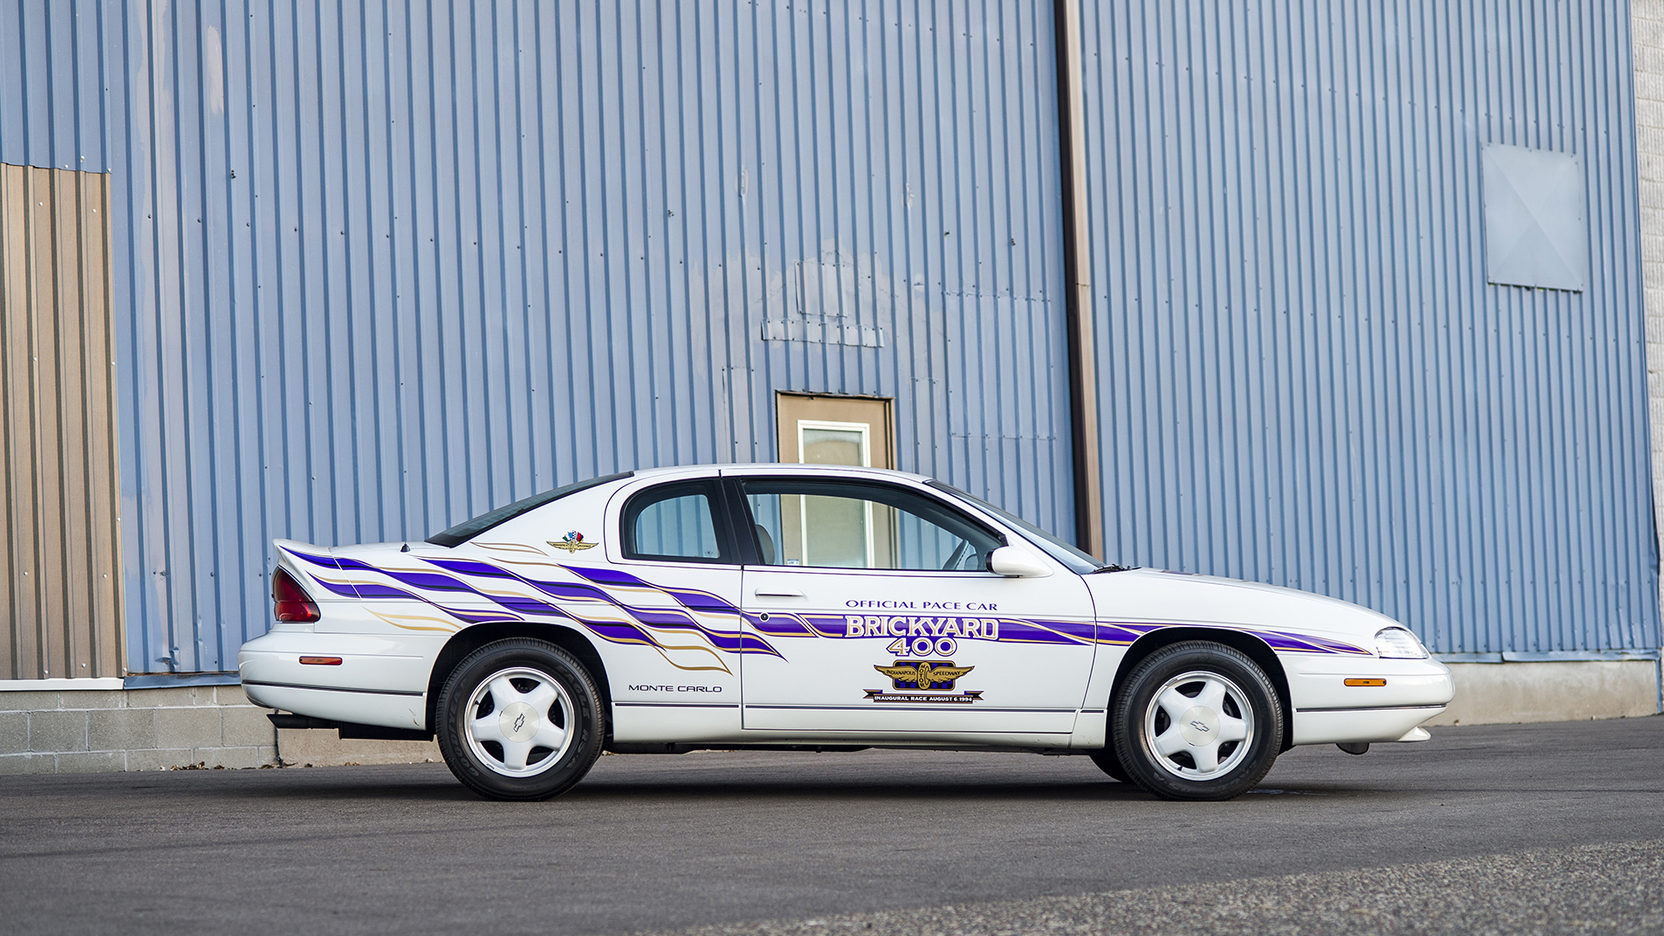 1995 chevrolet monte carlo z34 pace car edition 2 full screen [ 1664 x 936 Pixel ]